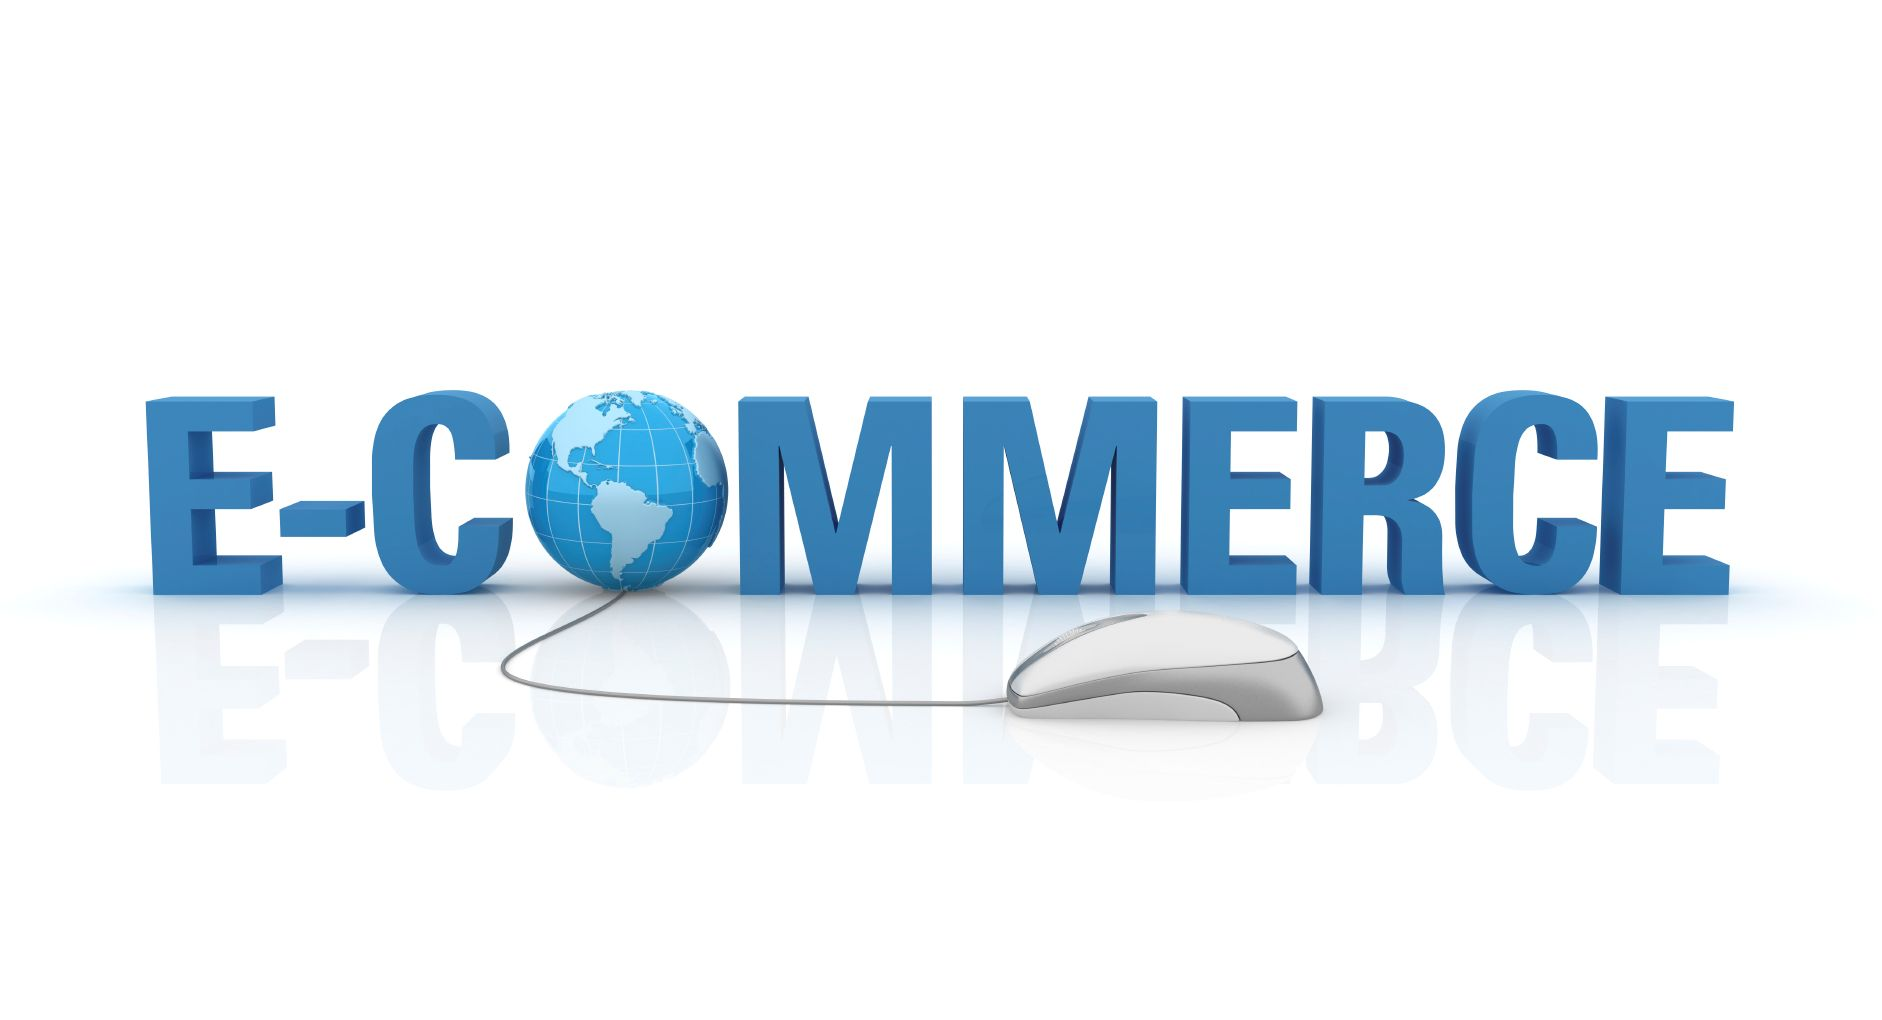 Take Your Ecommerce Business to the Next Level.